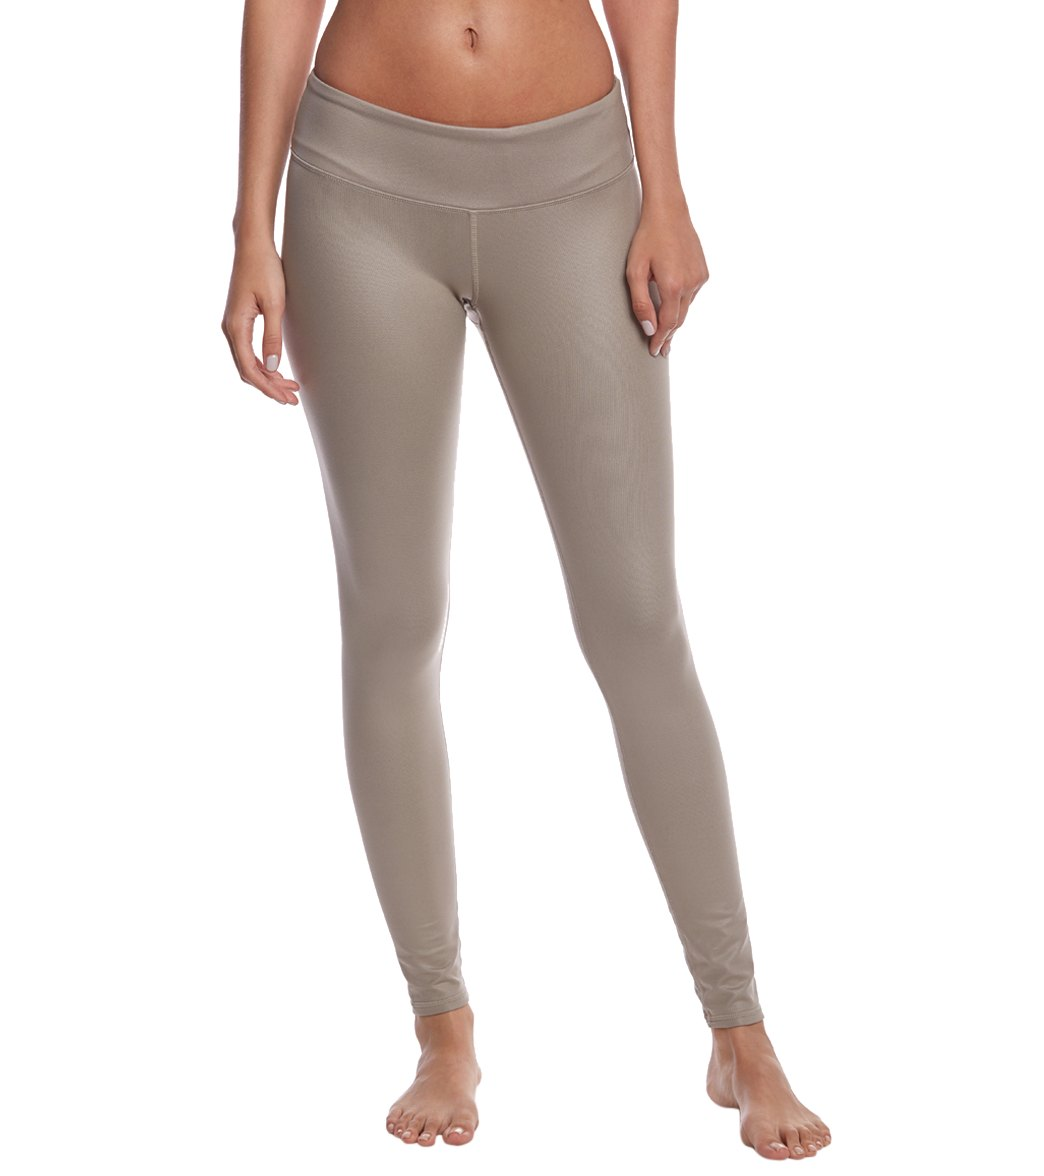 f5c6925e90635 Alo Yoga Airbrush Yoga Leggings at YogaOutlet.com - Free Shipping